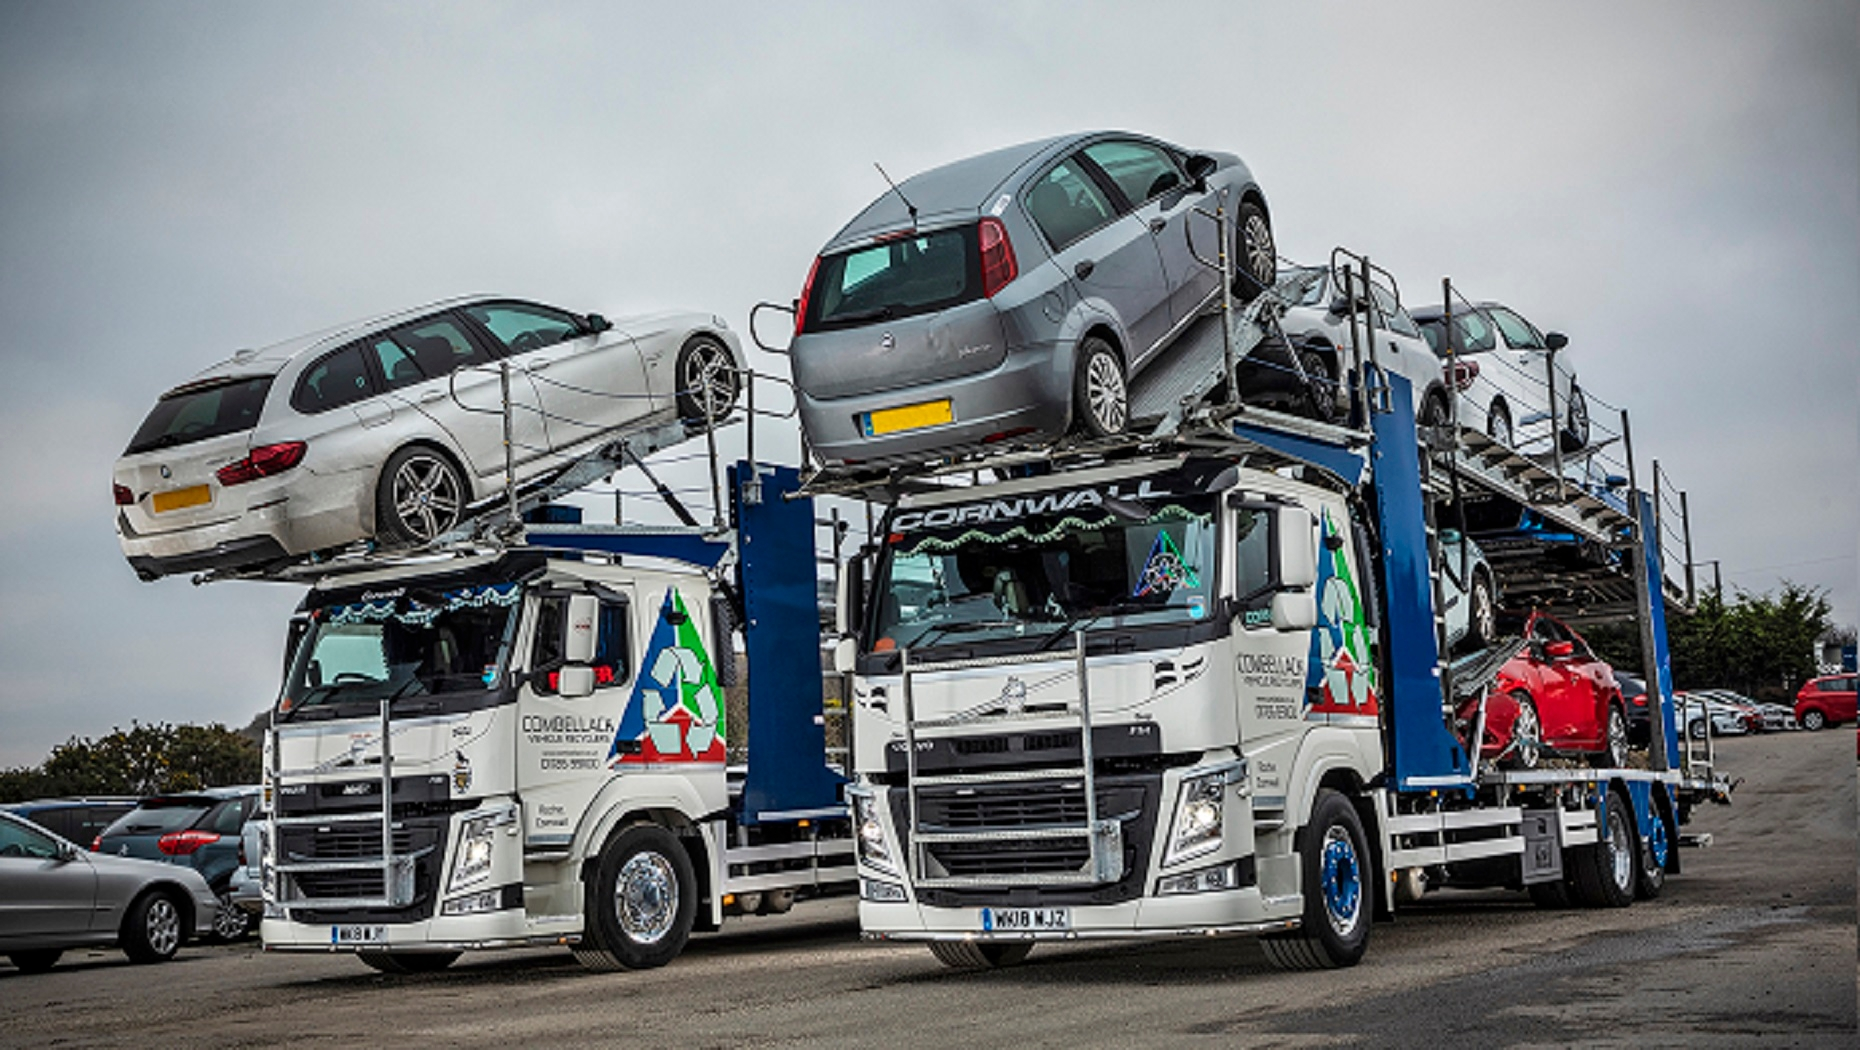 Combellack Vehicle Recyclers has put two new 26-tonne Volvo FM-420 chassis into service - the first in the UK to be fitted with fully-galvanised, Belle eight-car salvage bodywork.